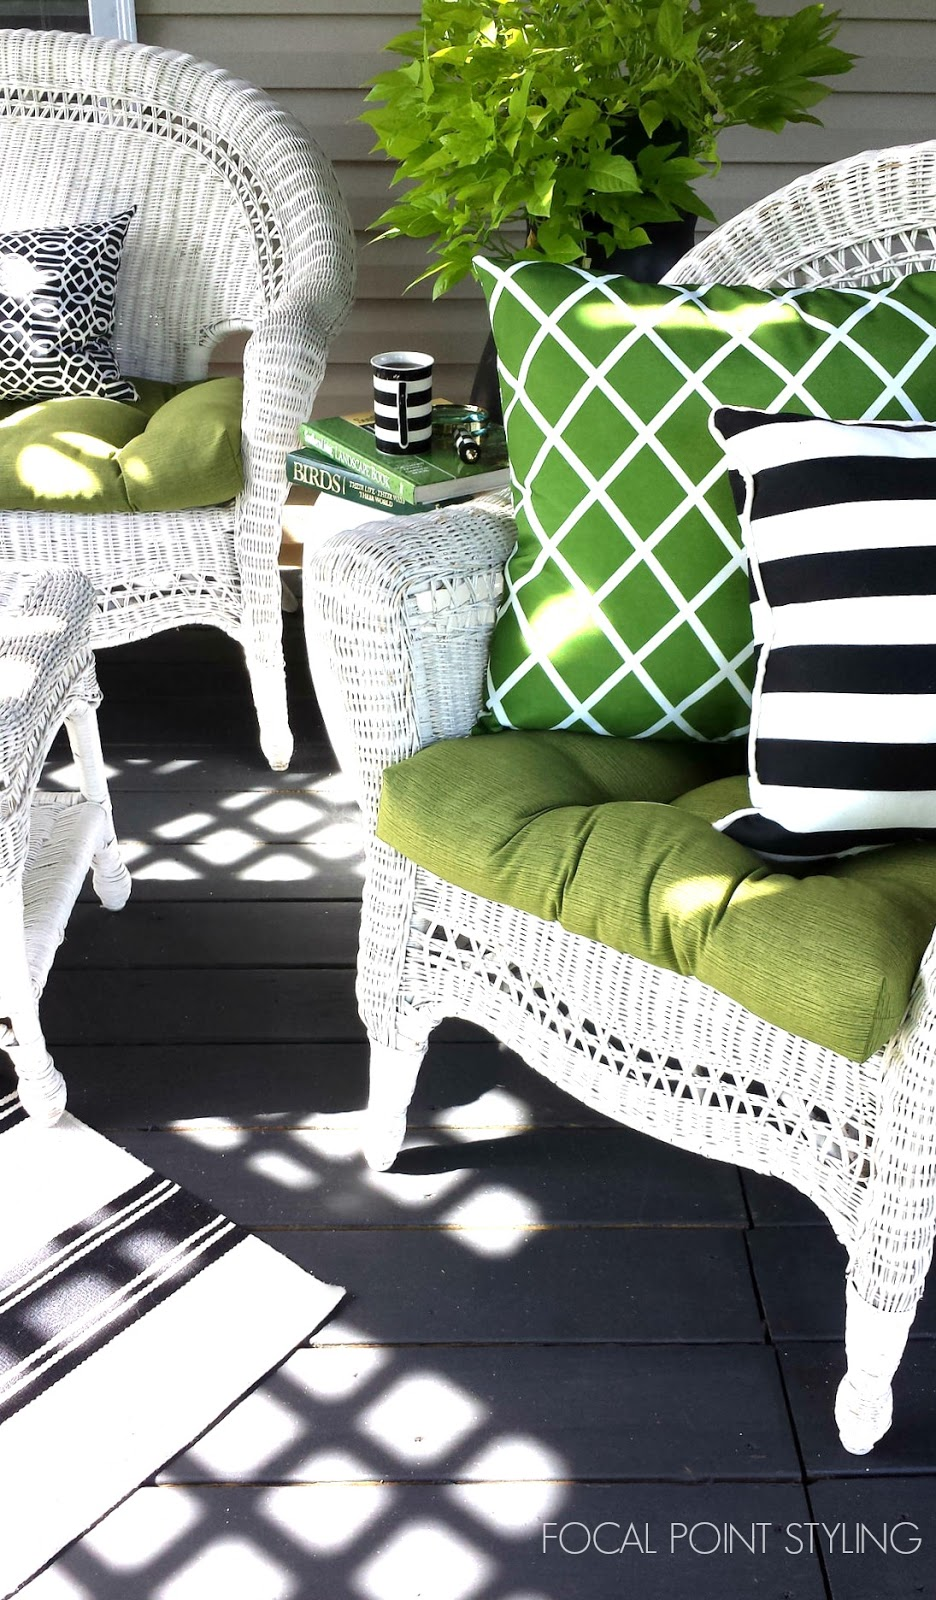 Stunning FOCAL POINT STYLING Easy Outdoor Decorating Mixing Old u New Deck Decor